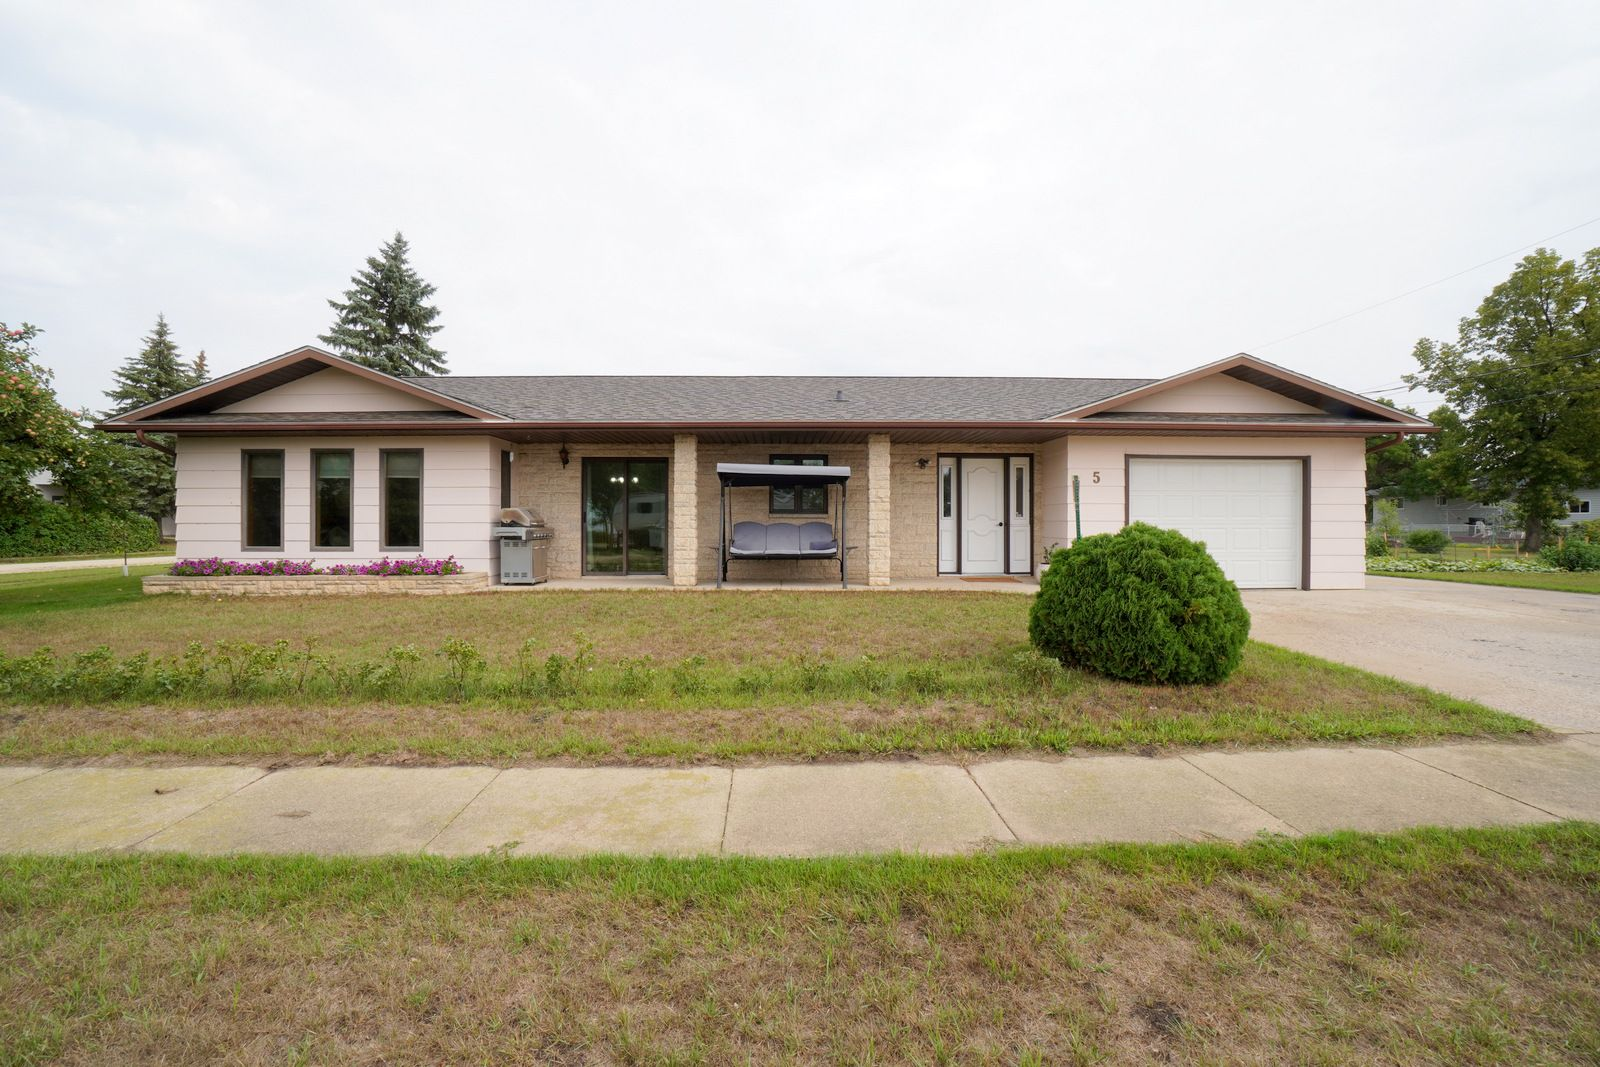 Main Photo: 5 Laurier Street in Haywood: House for sale : MLS®# 202121279